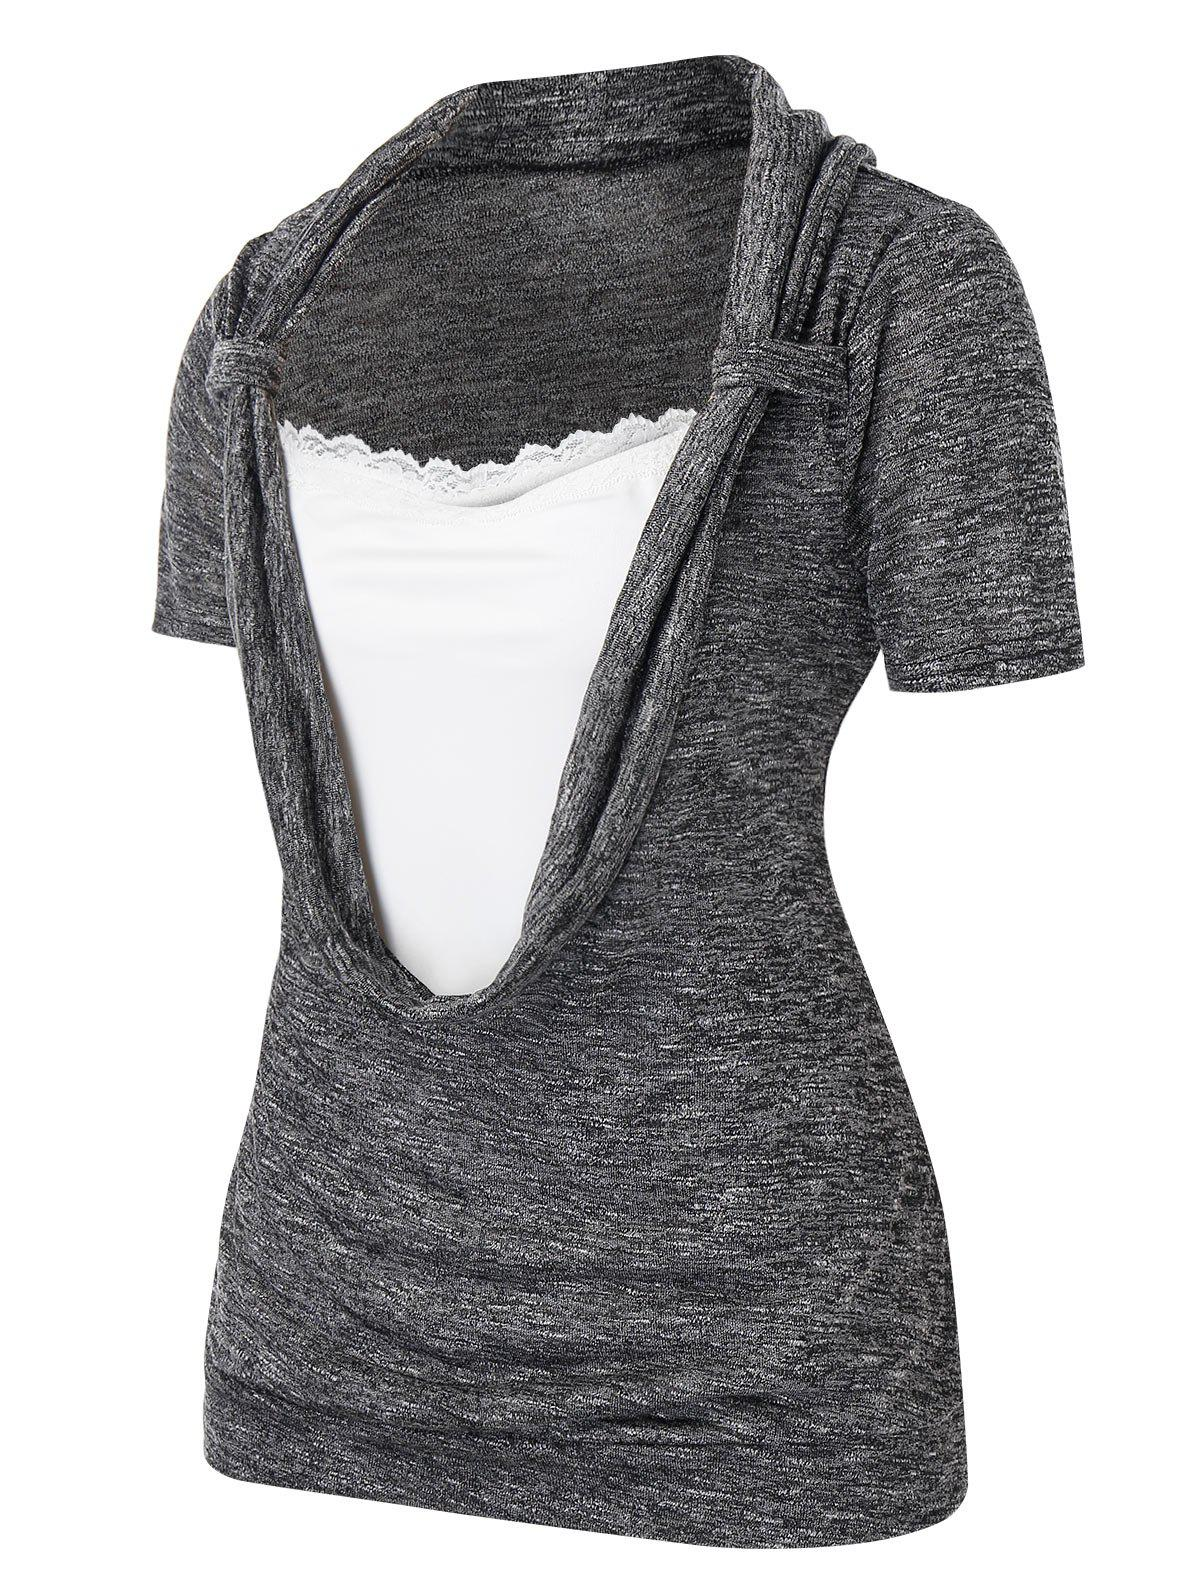 Plus Size Lace Splicing T-shirt - Cendre gris L